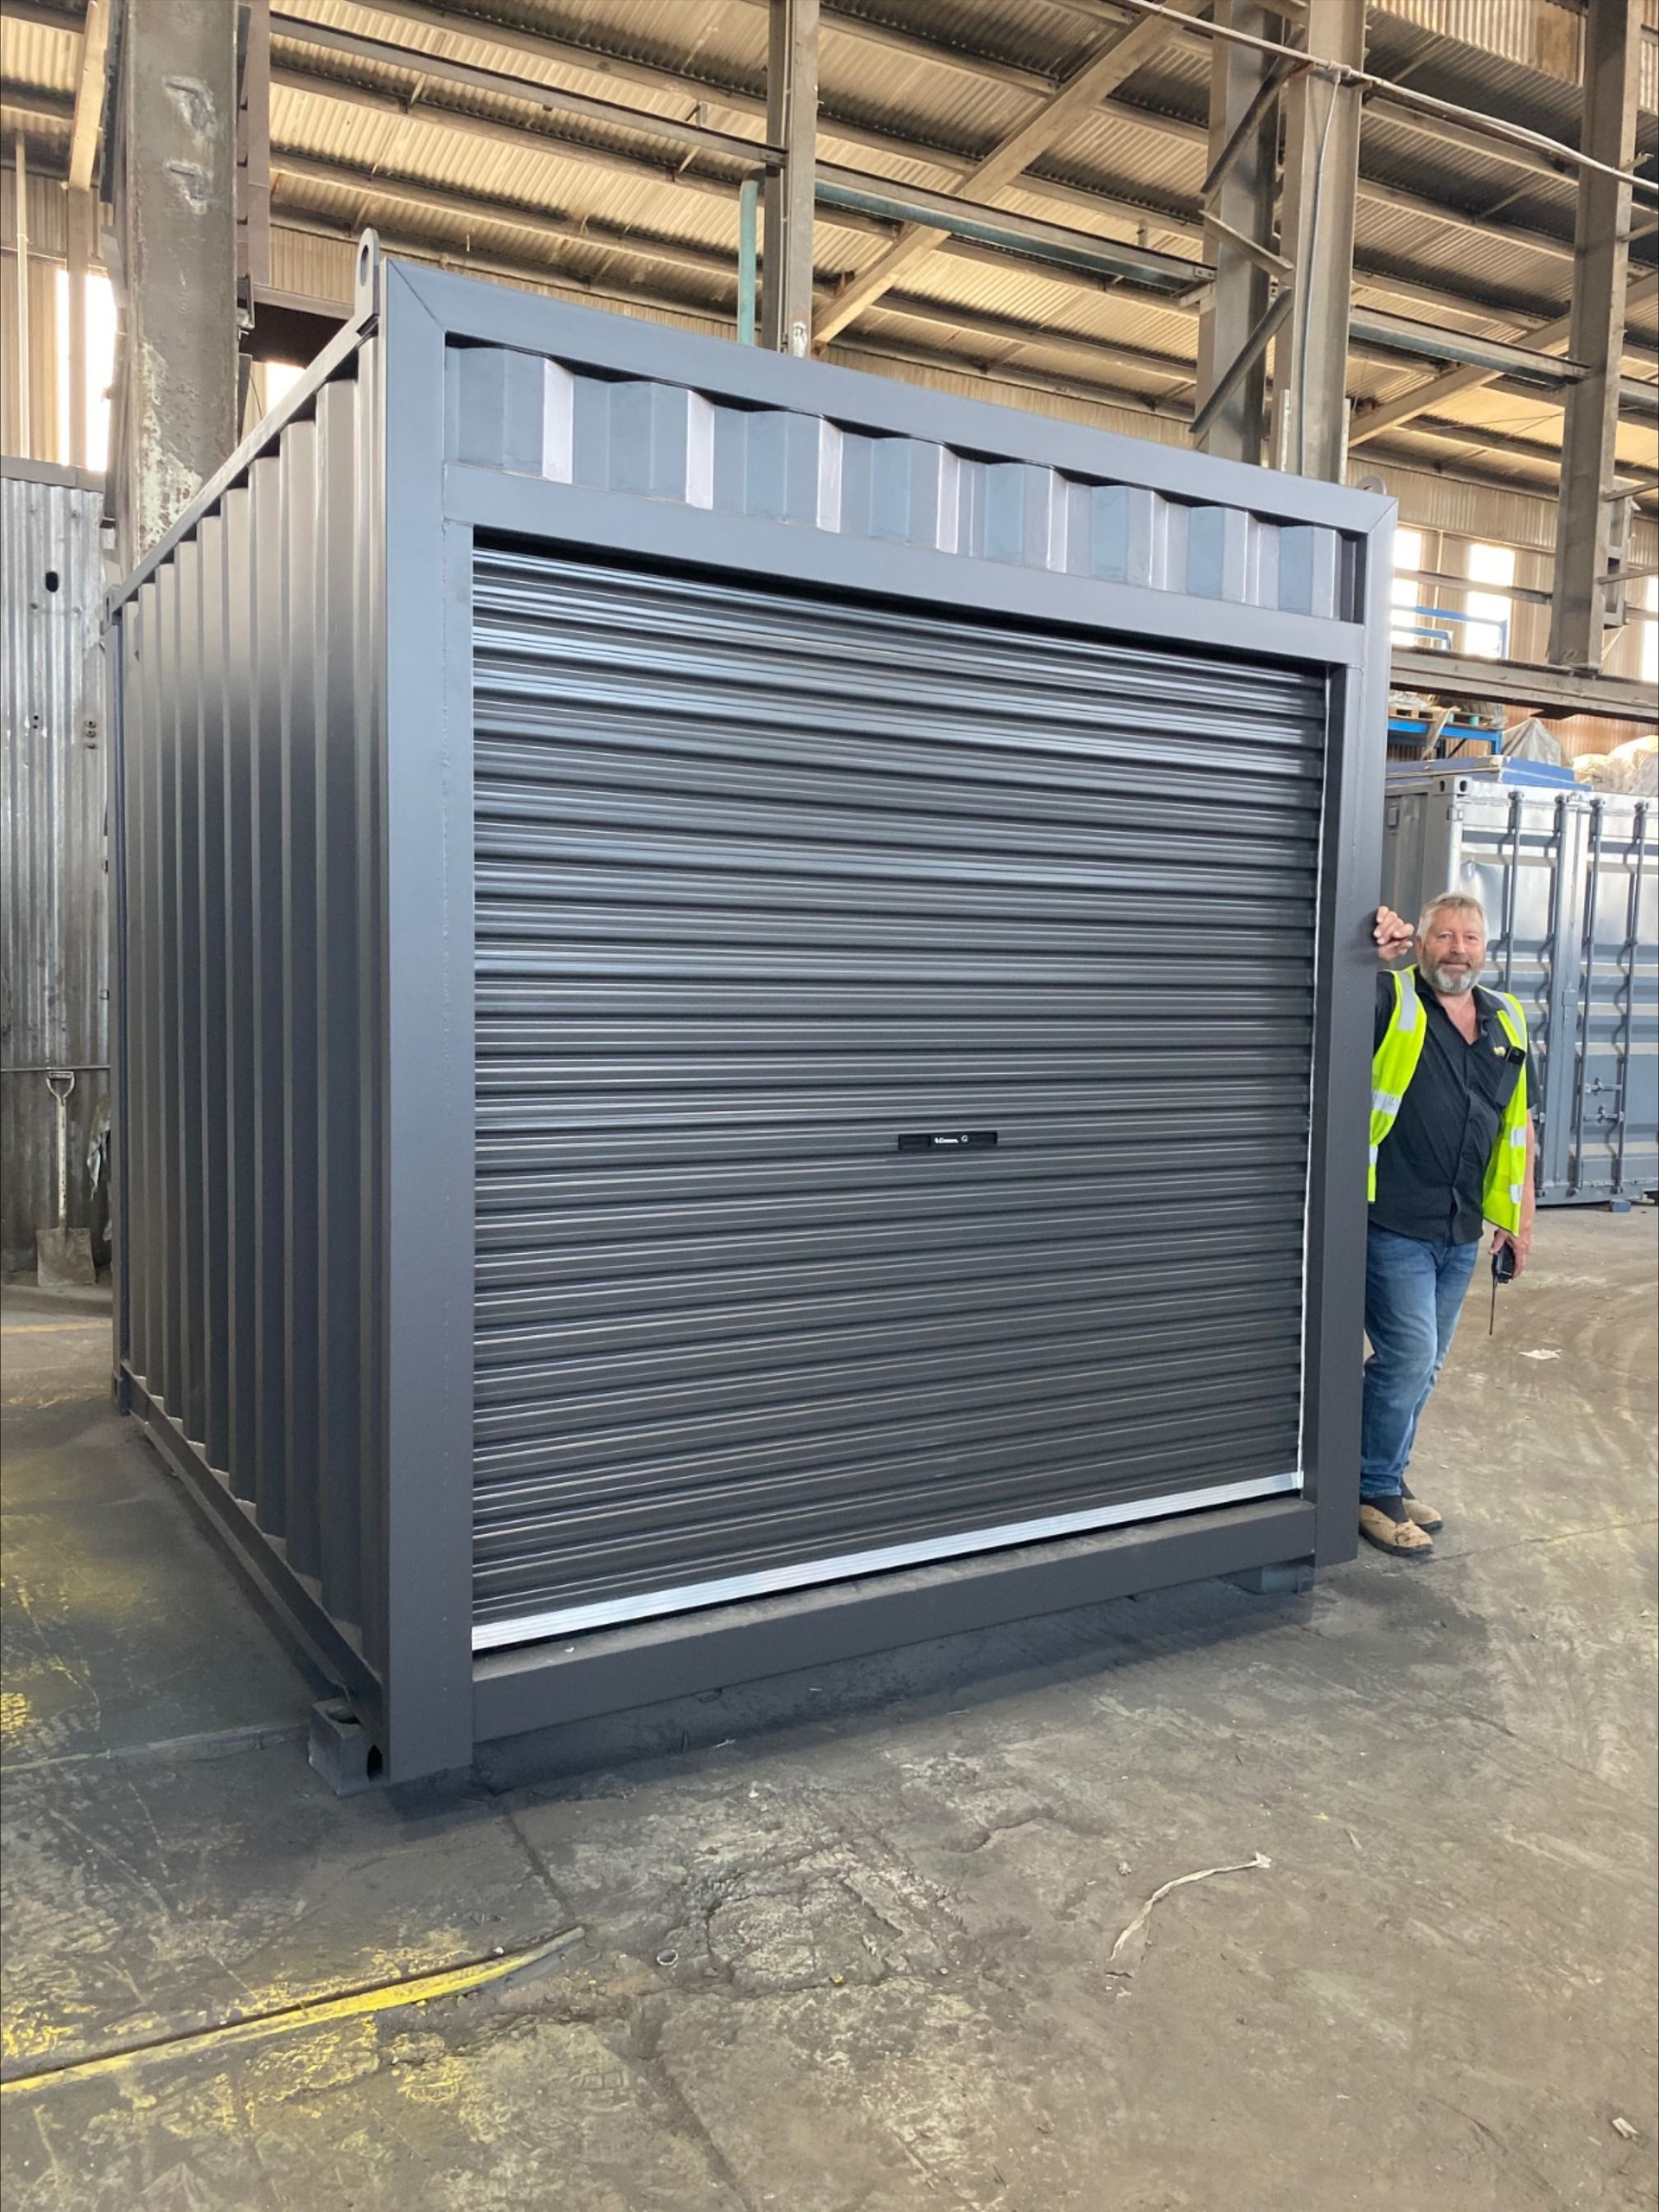 Shipping Containers For Sale In Melbourne Containerspace In 2020 Shipping Containers For Sale Containers For Sale Container Restaurant